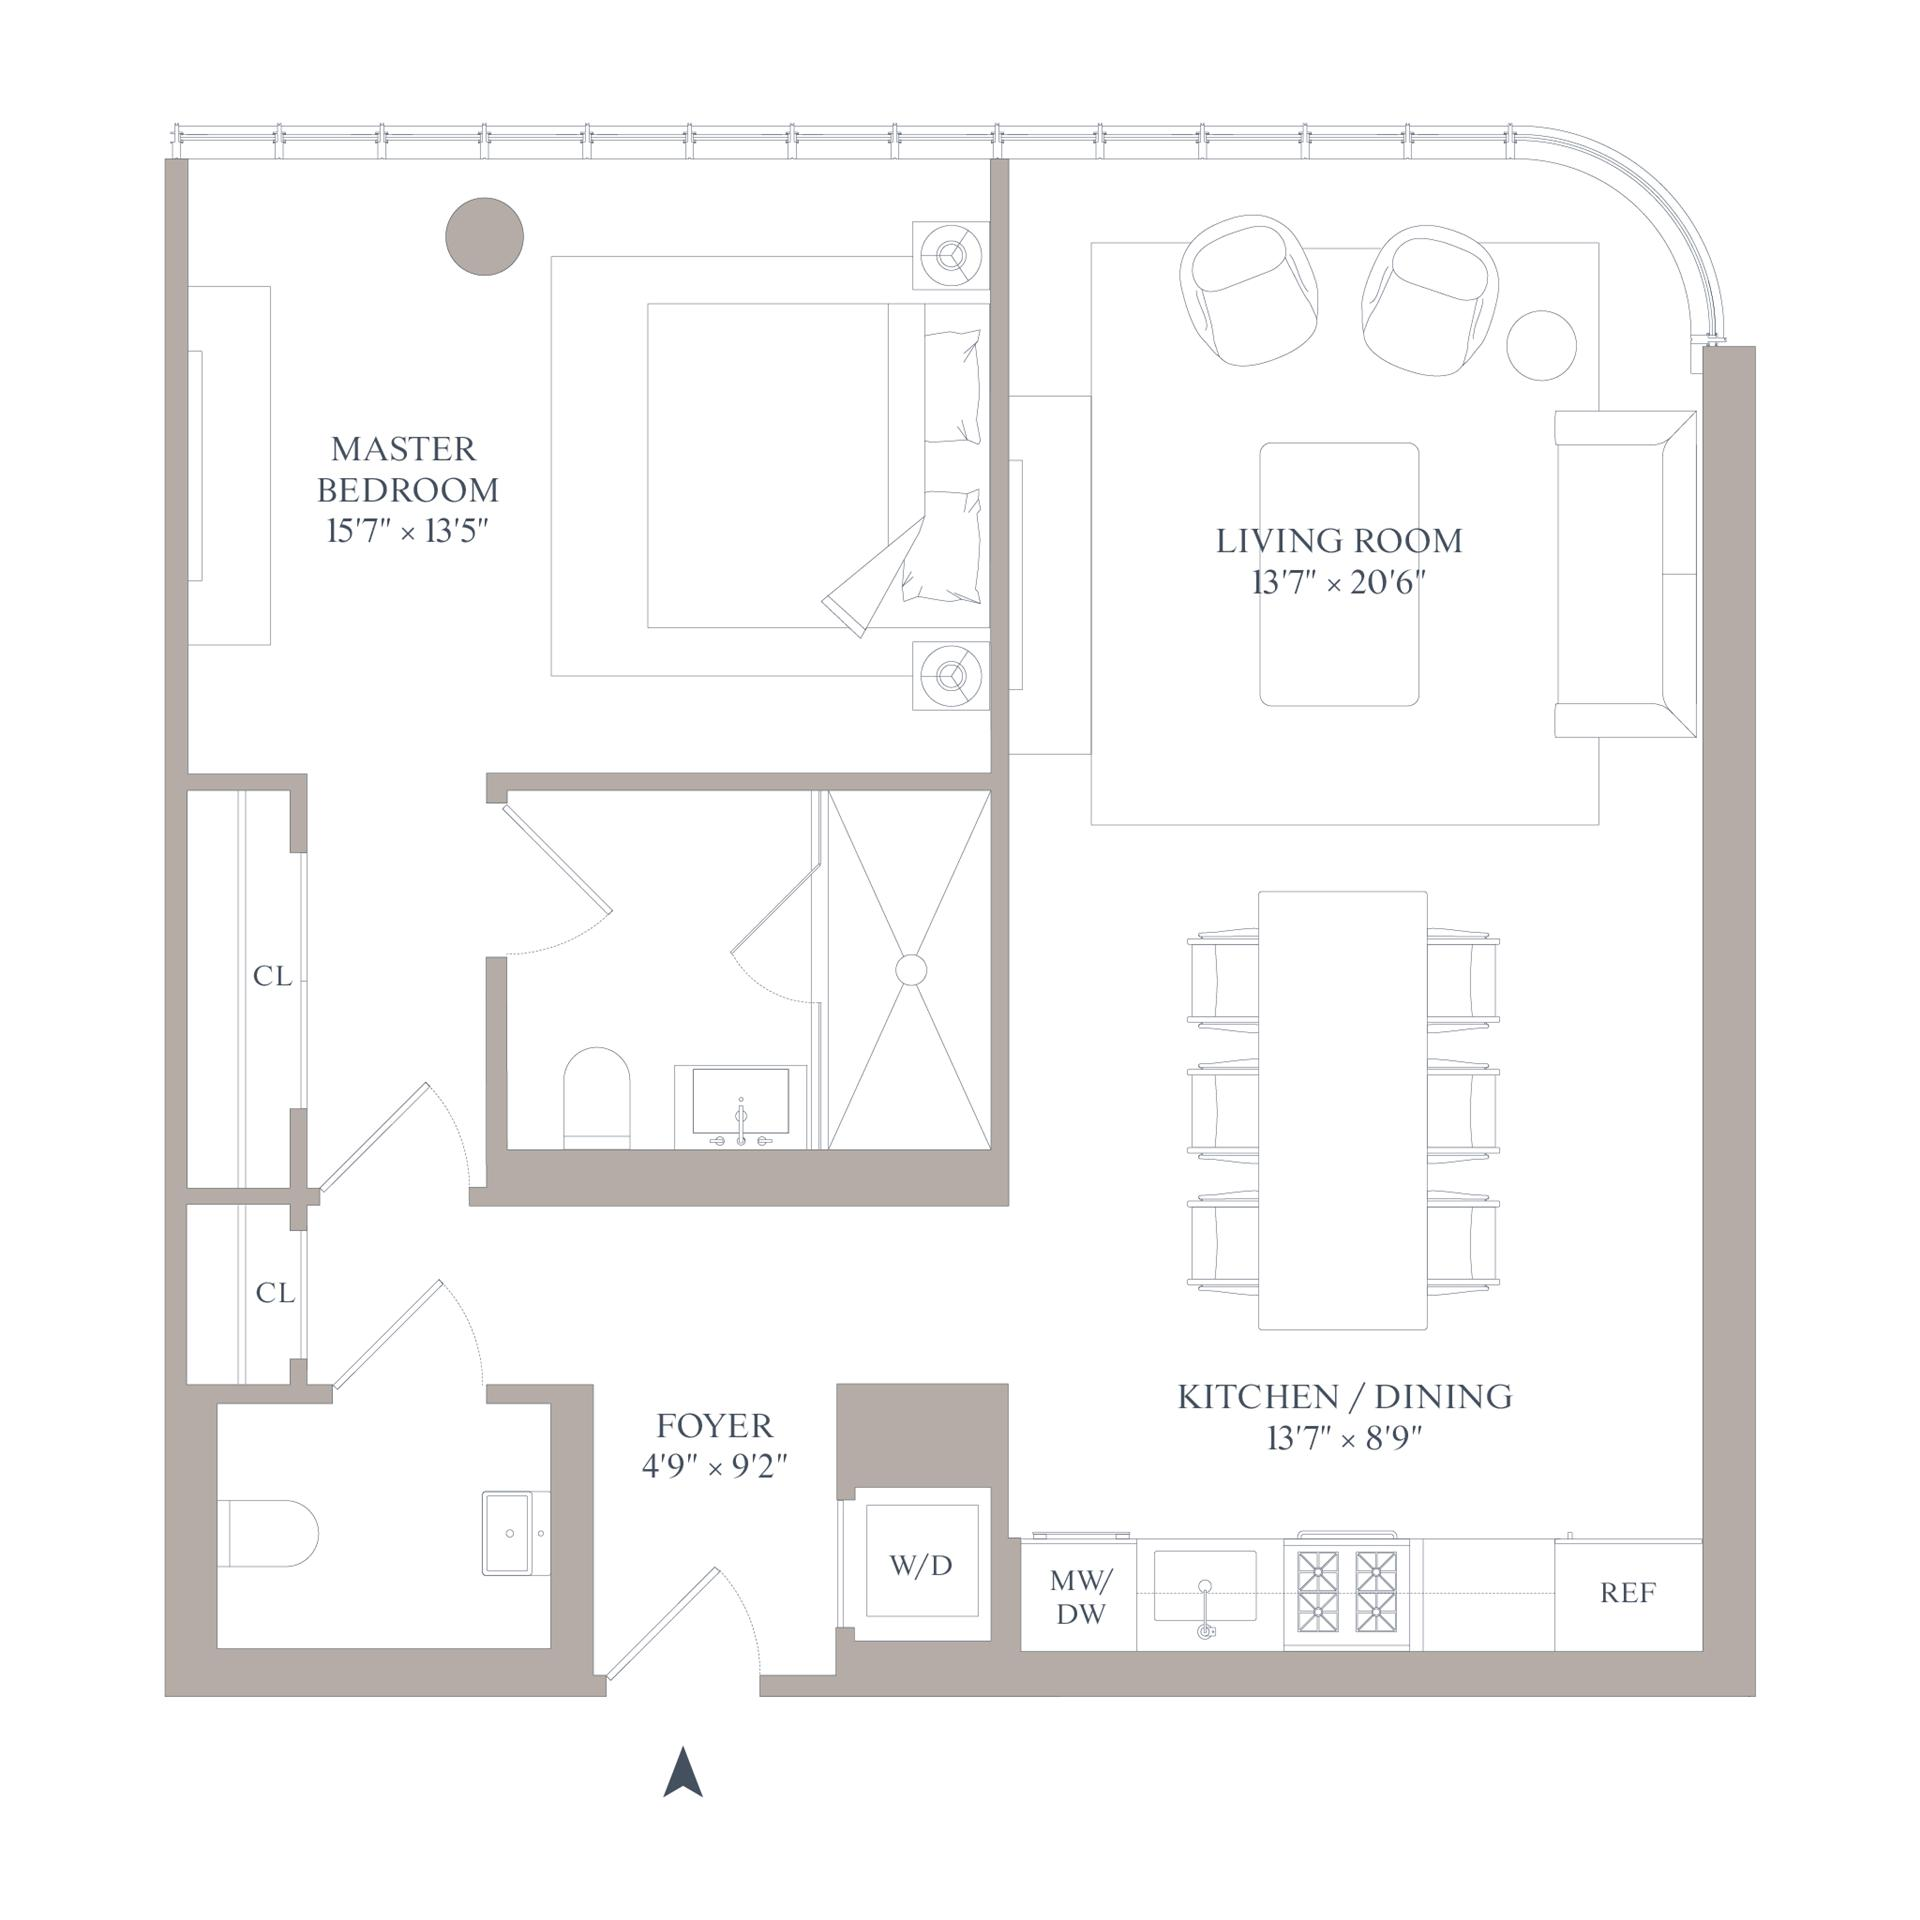 Floor plan of 565 Broome St, N12D - SoHo - Nolita, New York